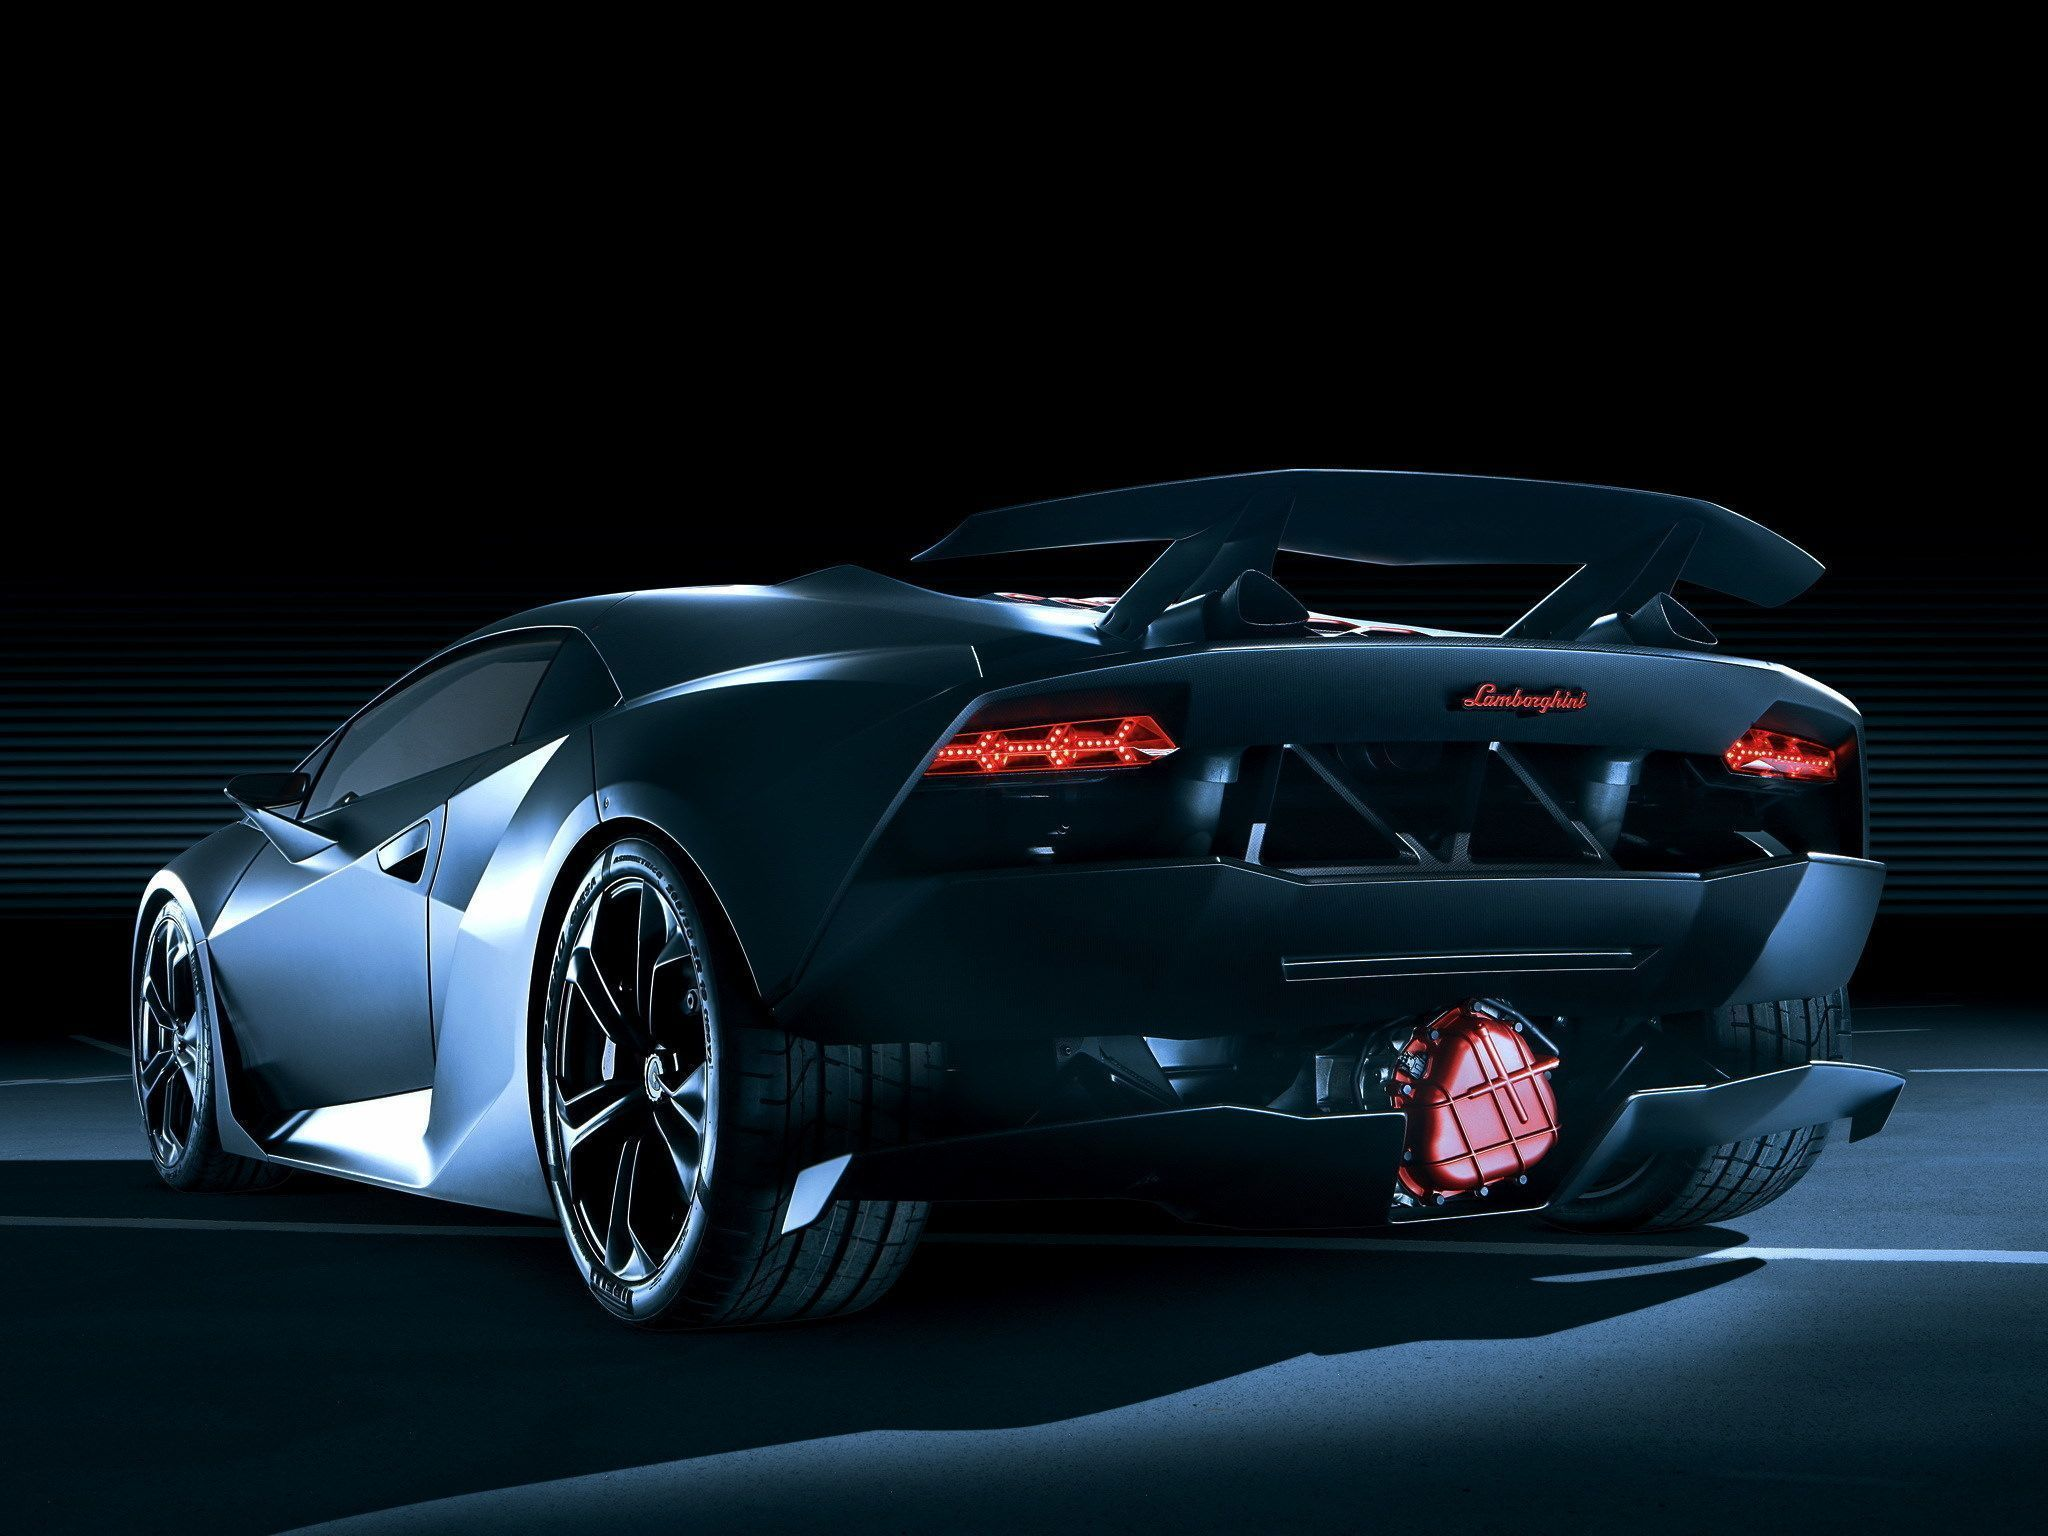 Lamborghini Wallpapers 1080p Lamborghini Aventador Wallpaper Lamborghini Pictures Dark Wallpaper